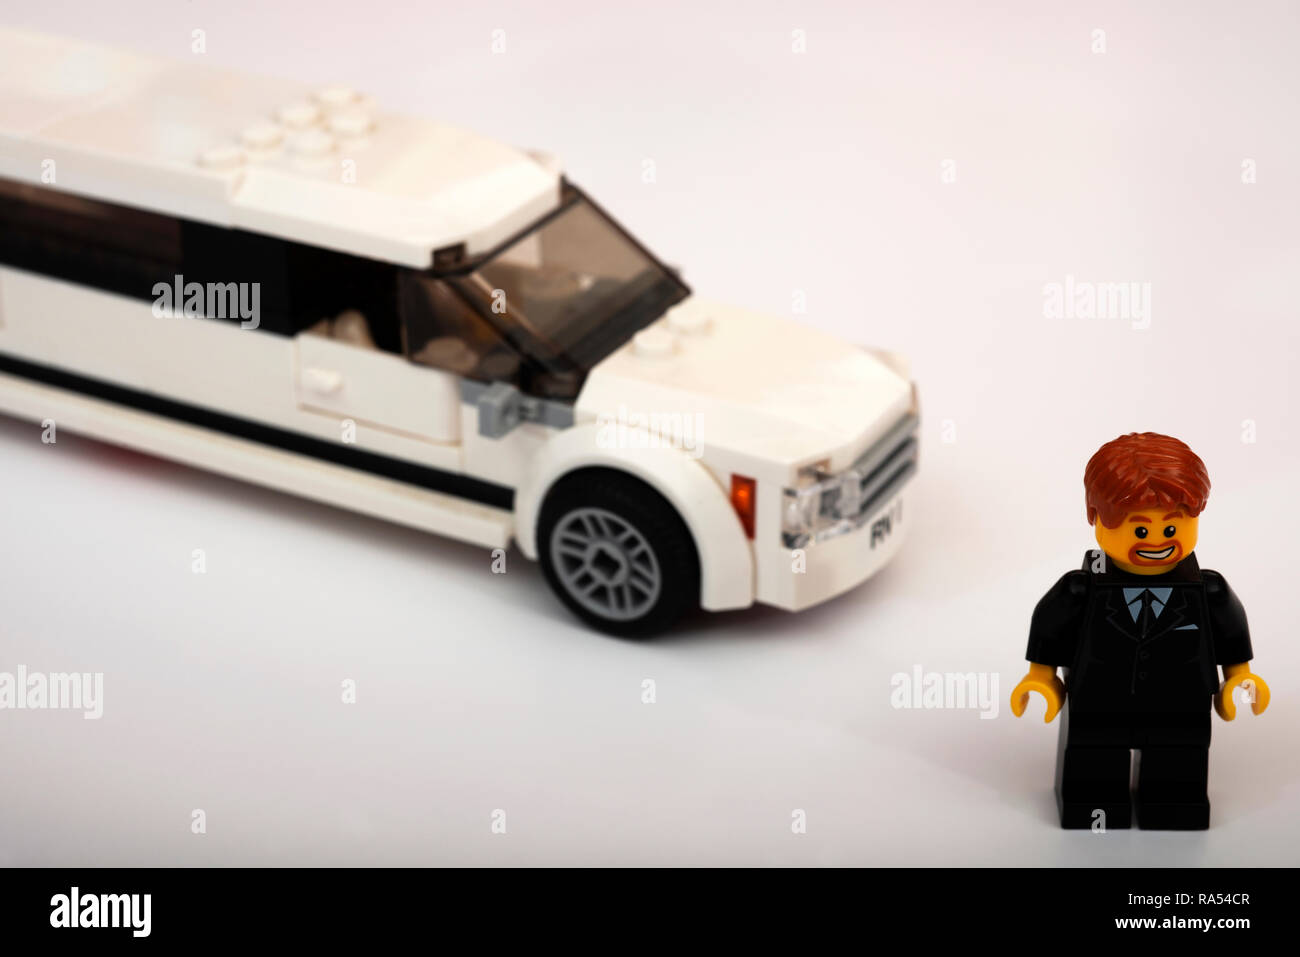 Lego limousine and driver - Stock Image